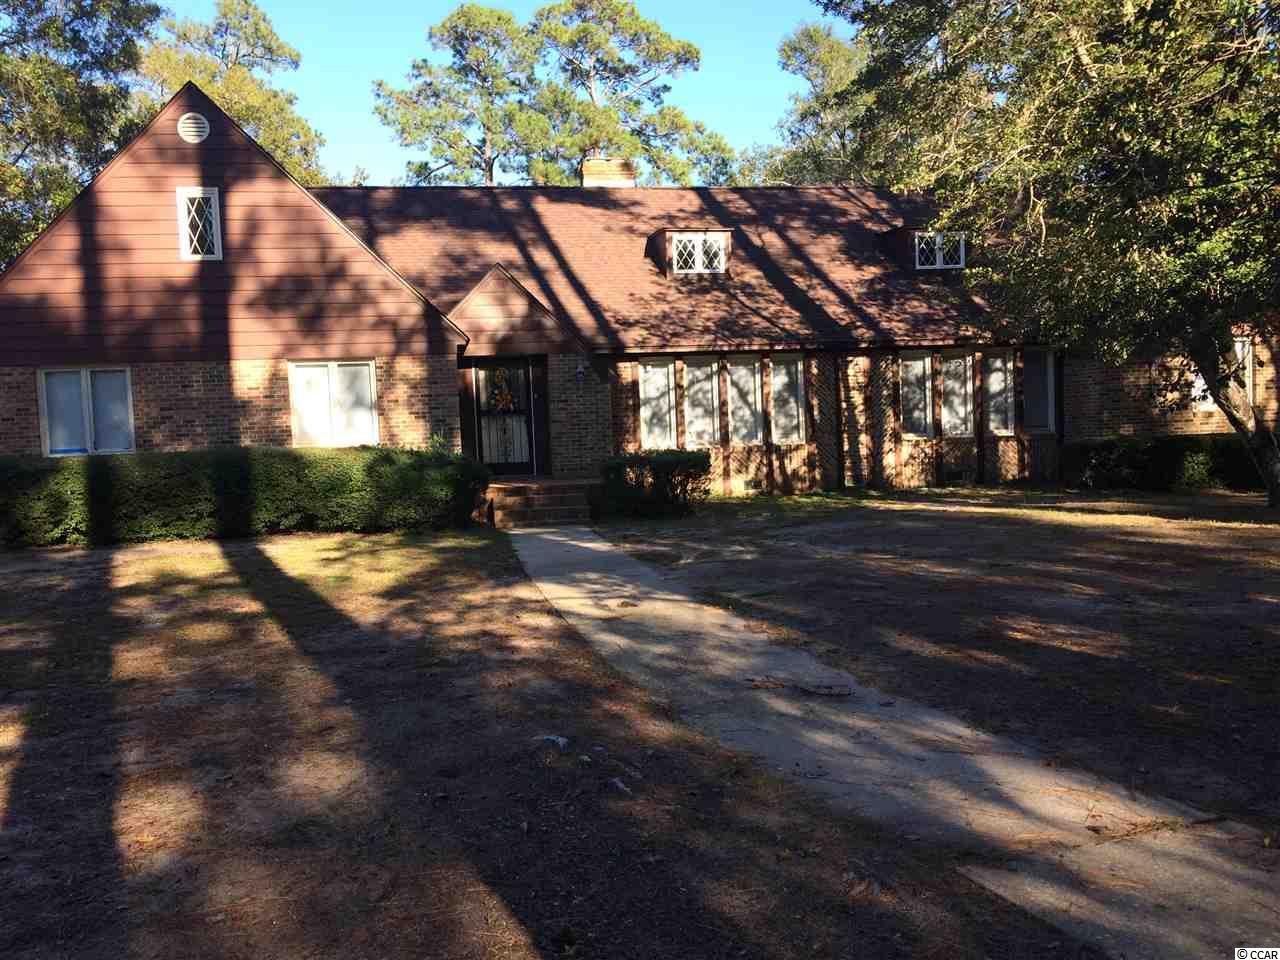 This is a one of a kind property, home sites on 1.95 acres with over 370ft of Waccamaw River frontage. Home has a private boat ramp and a large boat house. Inside the home features 3 bedrooms, 2 baths, 2 fireplaces, 2 large living areas, a formal dinning room, and a welcoming formal foyer. Out back has a large private patio over looking the Waccamaw River with moss covered trees, azaleas, and camellias great for entertaining. Home is a must see to appreciate.